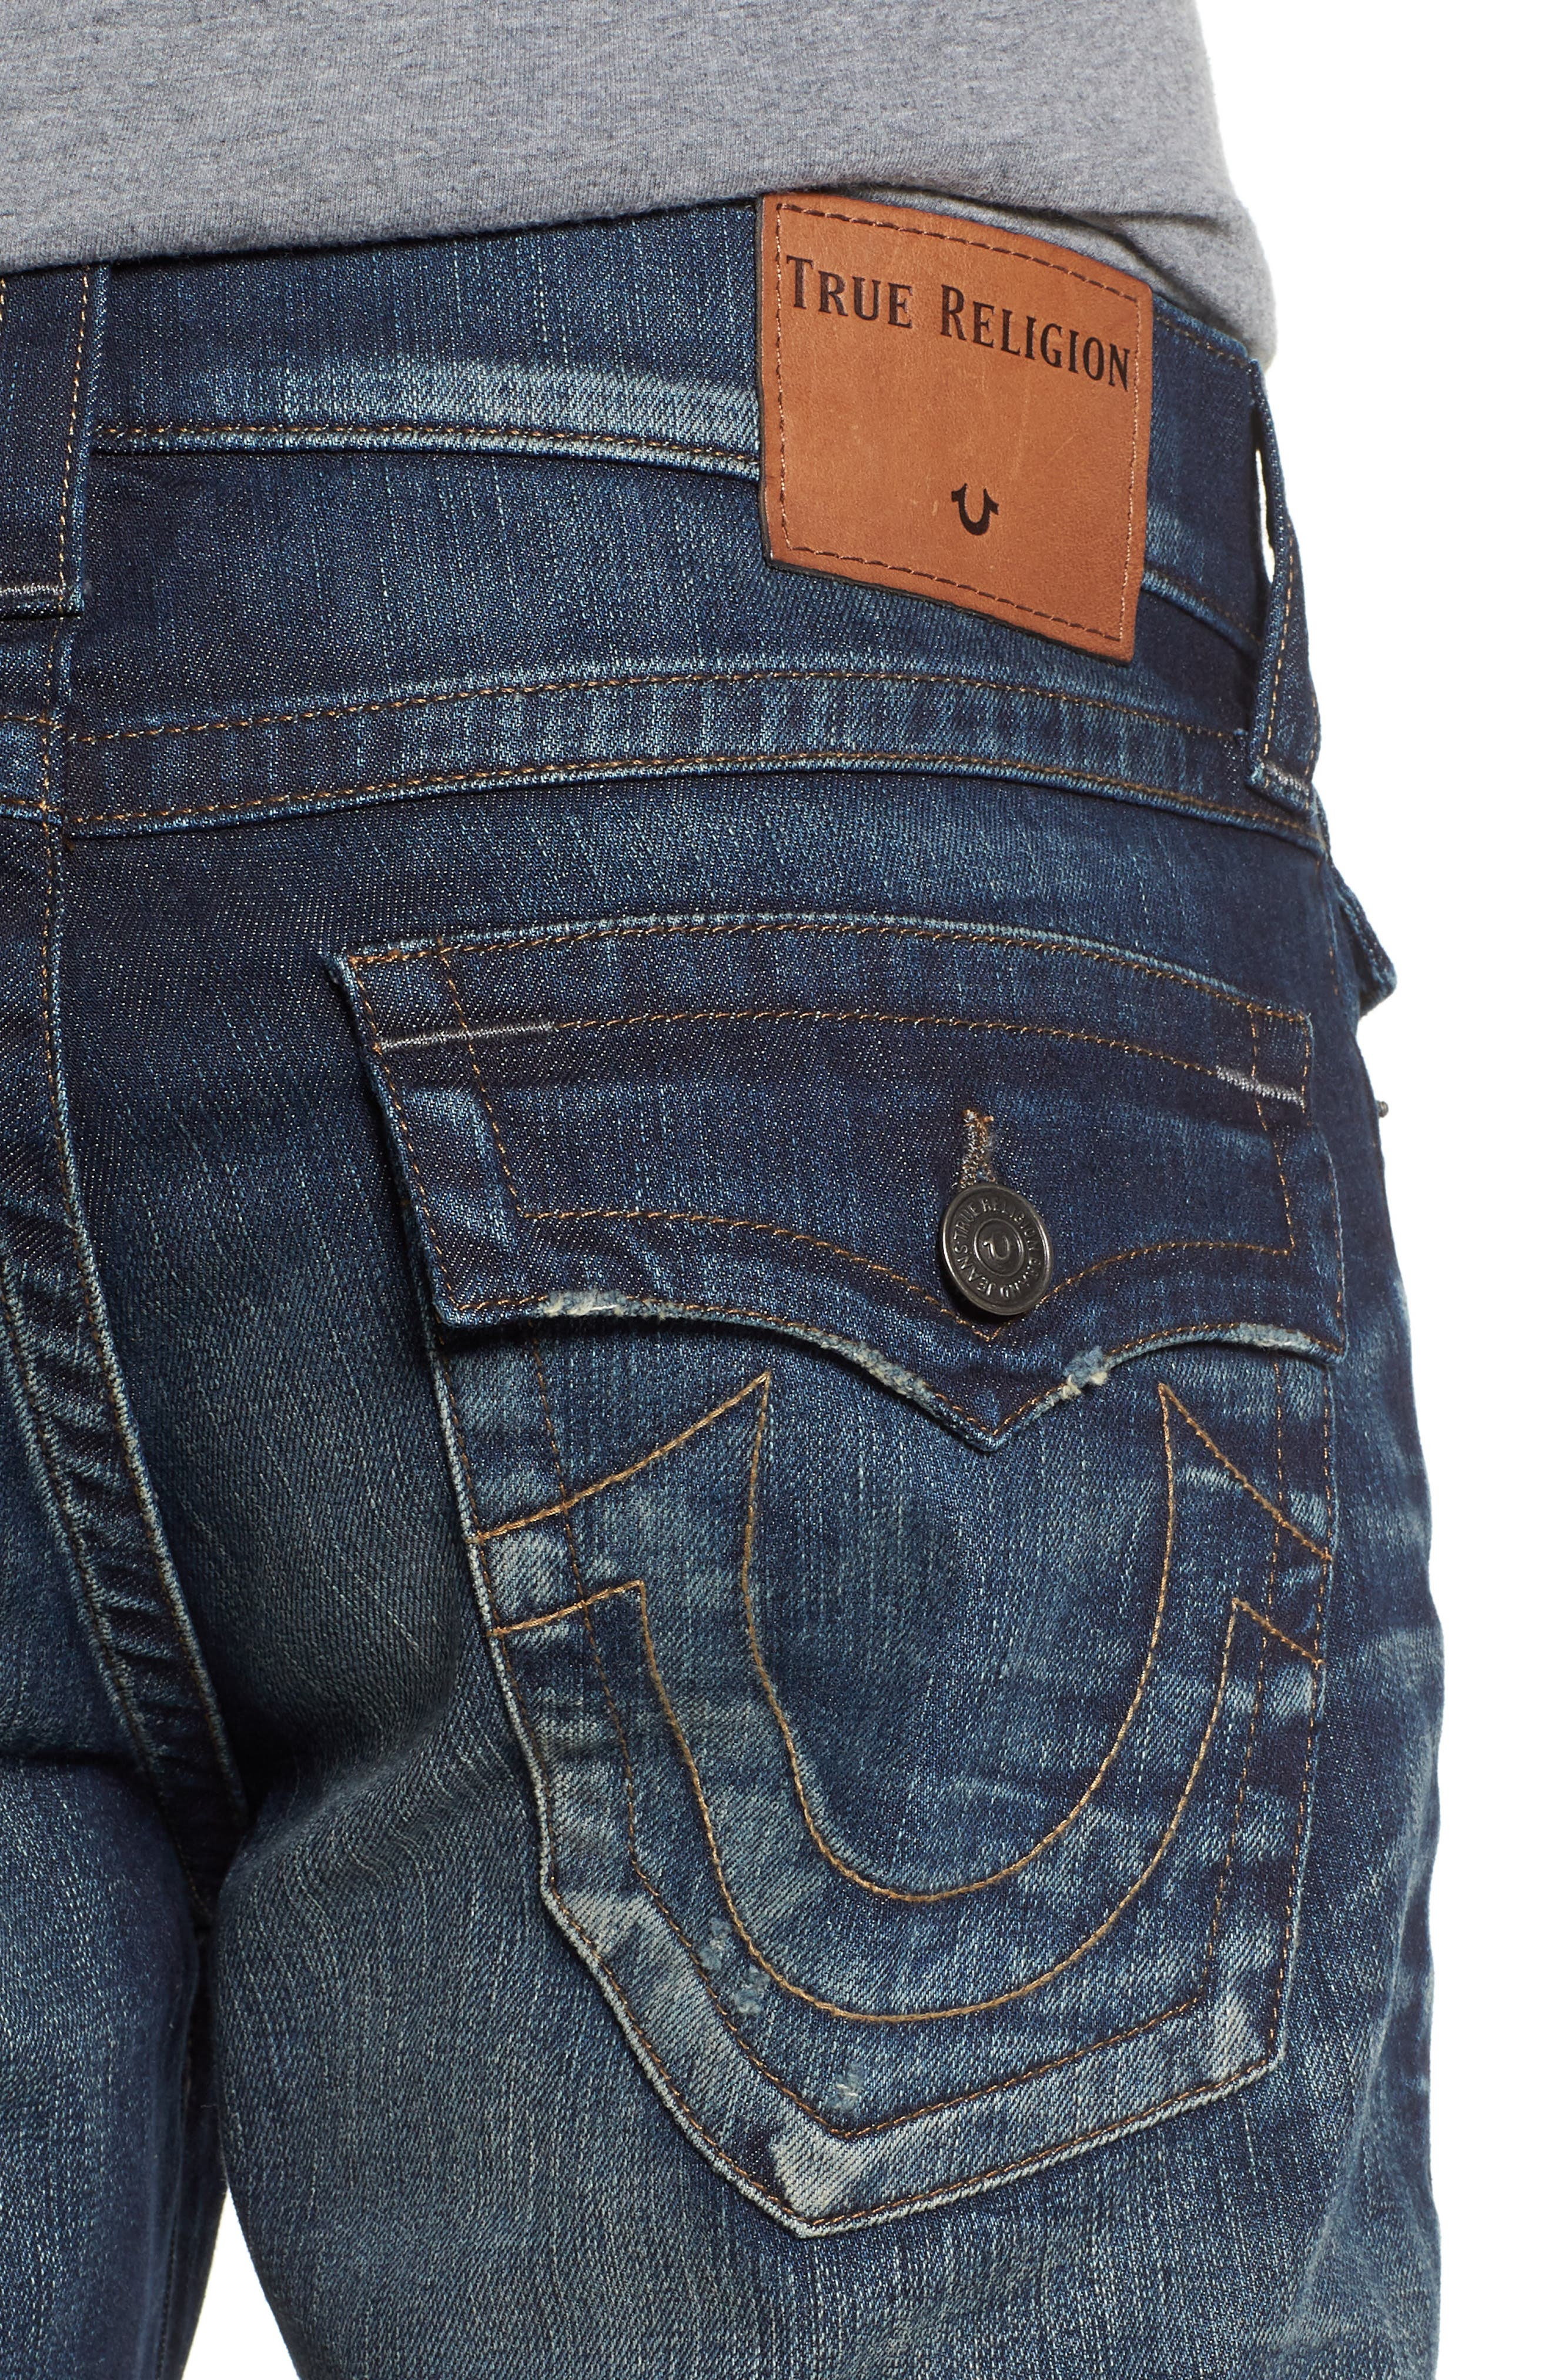 Ricky Relaxed Fit Jeans,                             Alternate thumbnail 4, color,                             Combat Blues